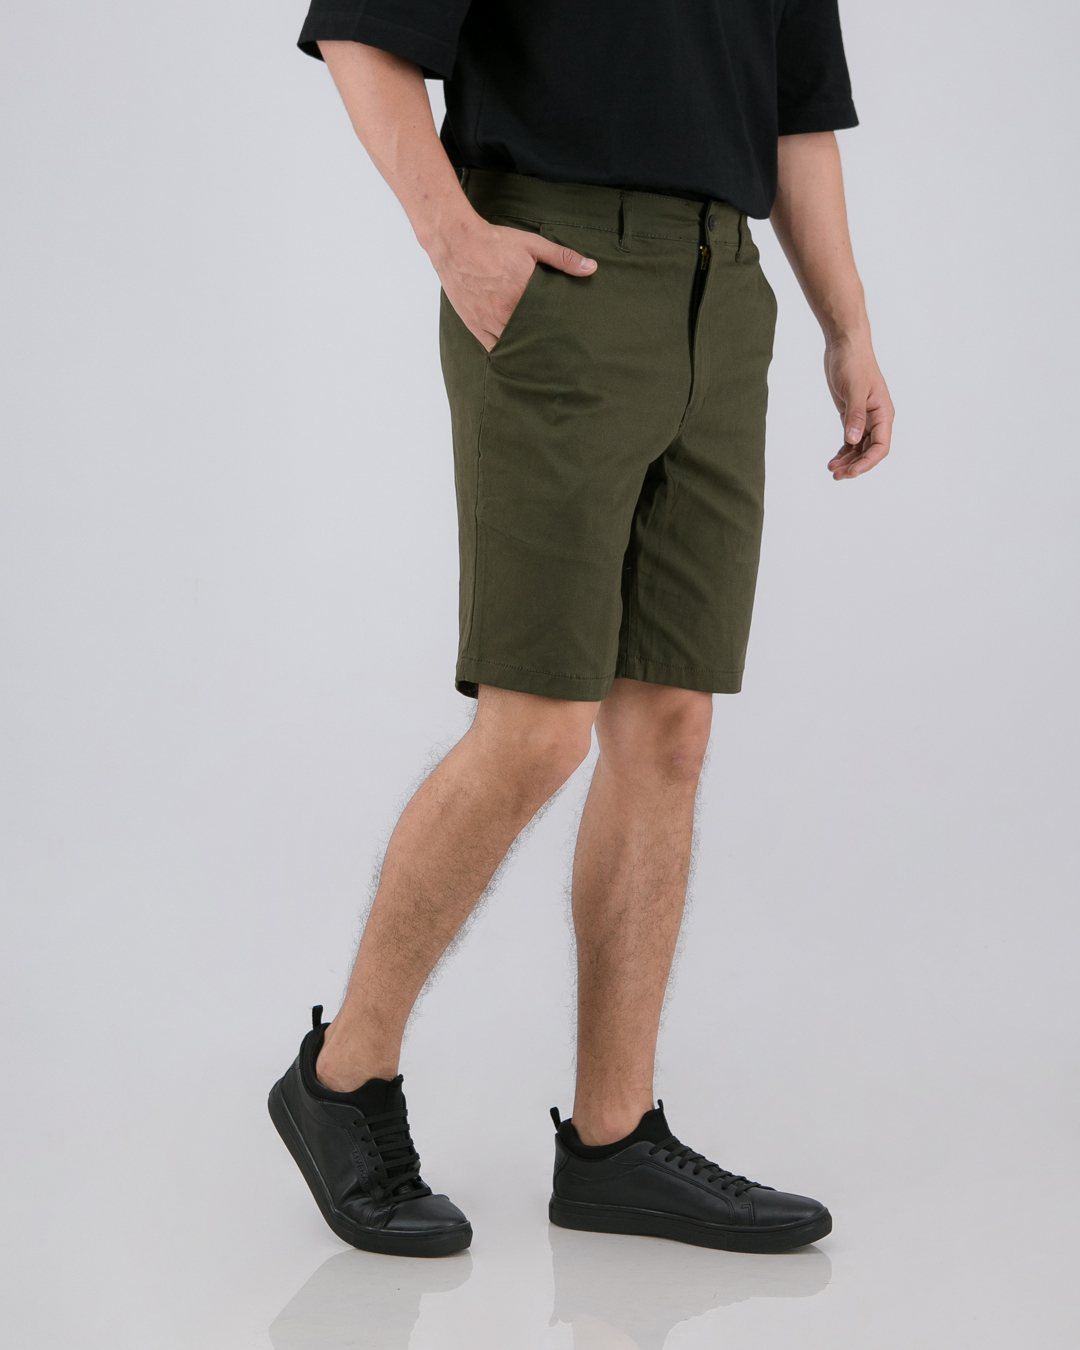 Tib Chino Short Pants Green Army